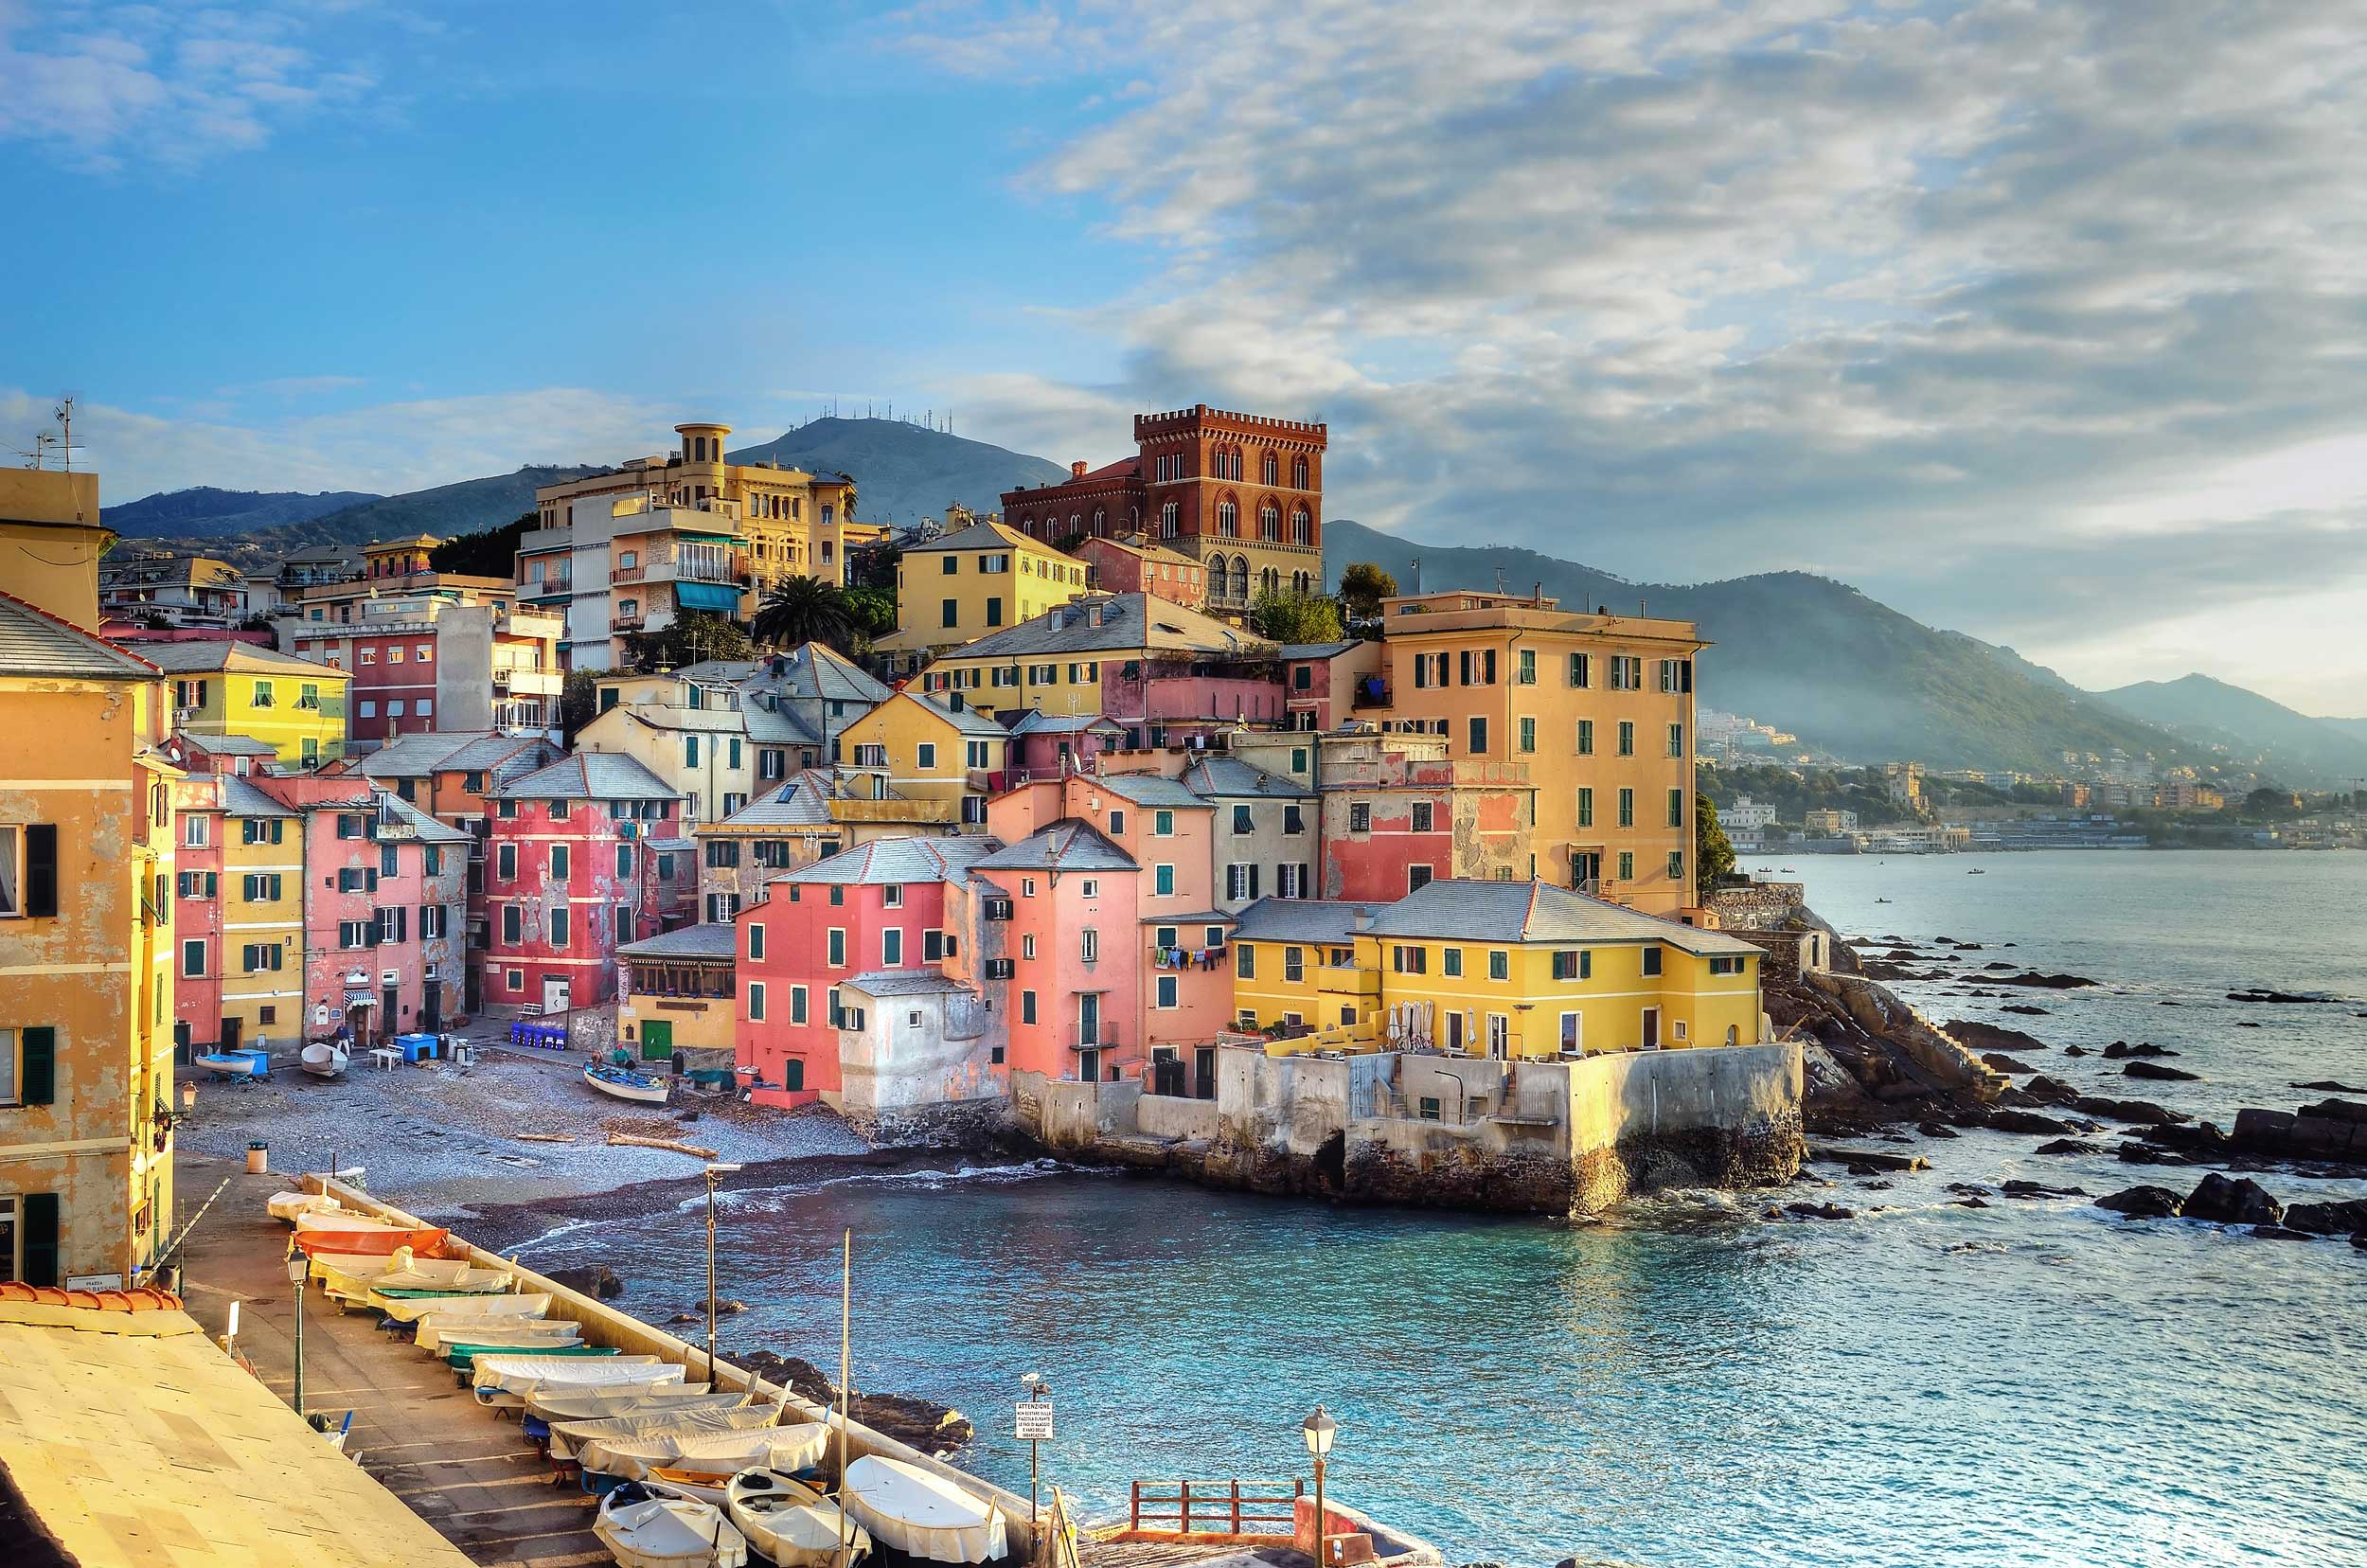 Pastel coloured buildings by the sea with landed fishing boats on the side, Genoa.